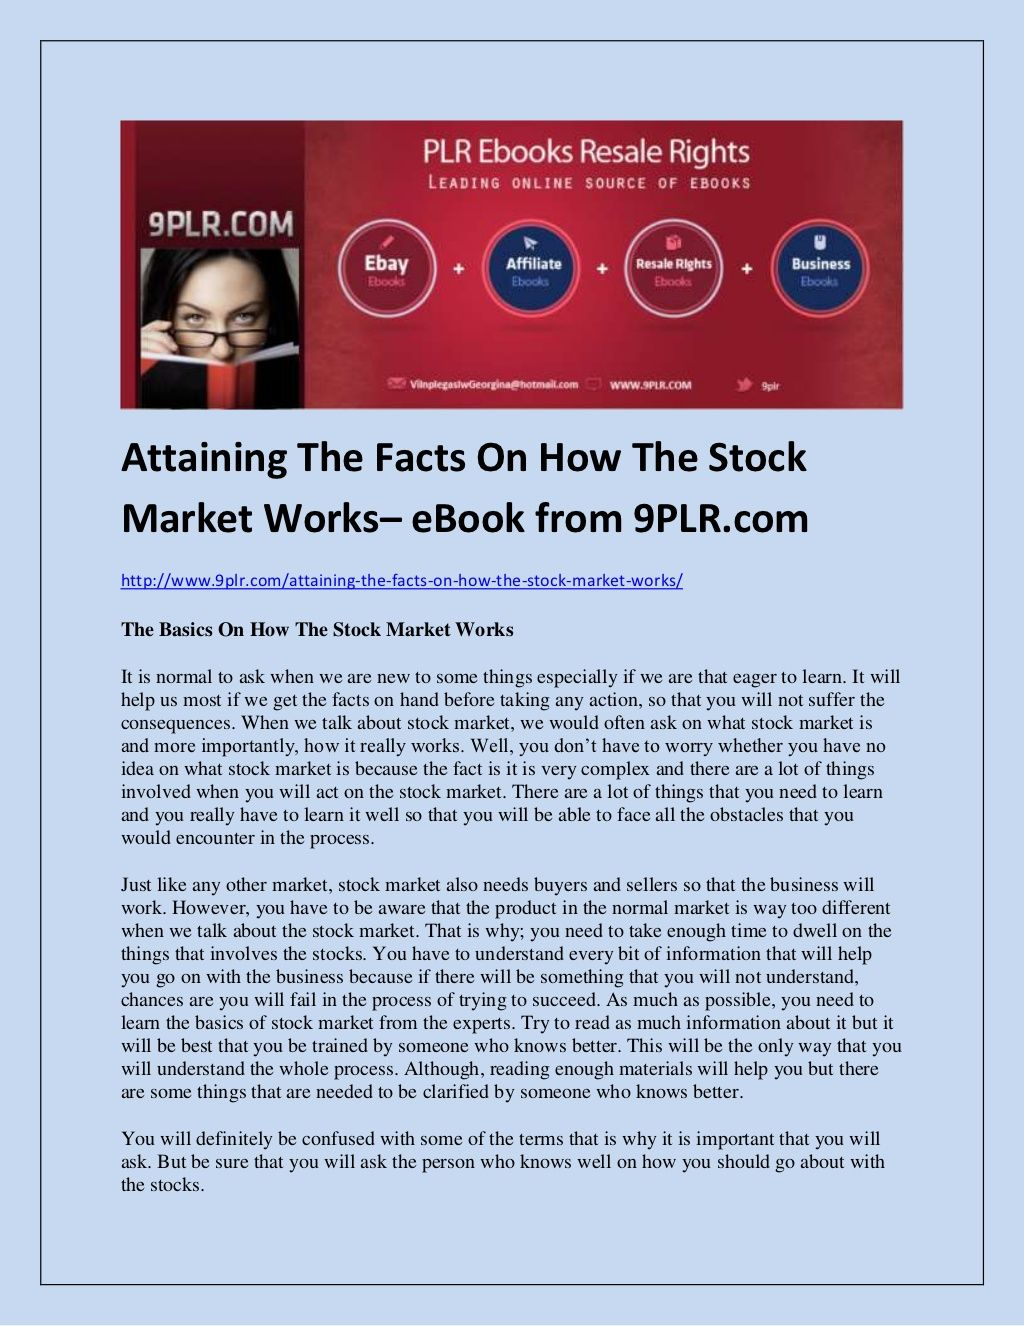 Attaining The Facts On How The Stock Market Works eBook